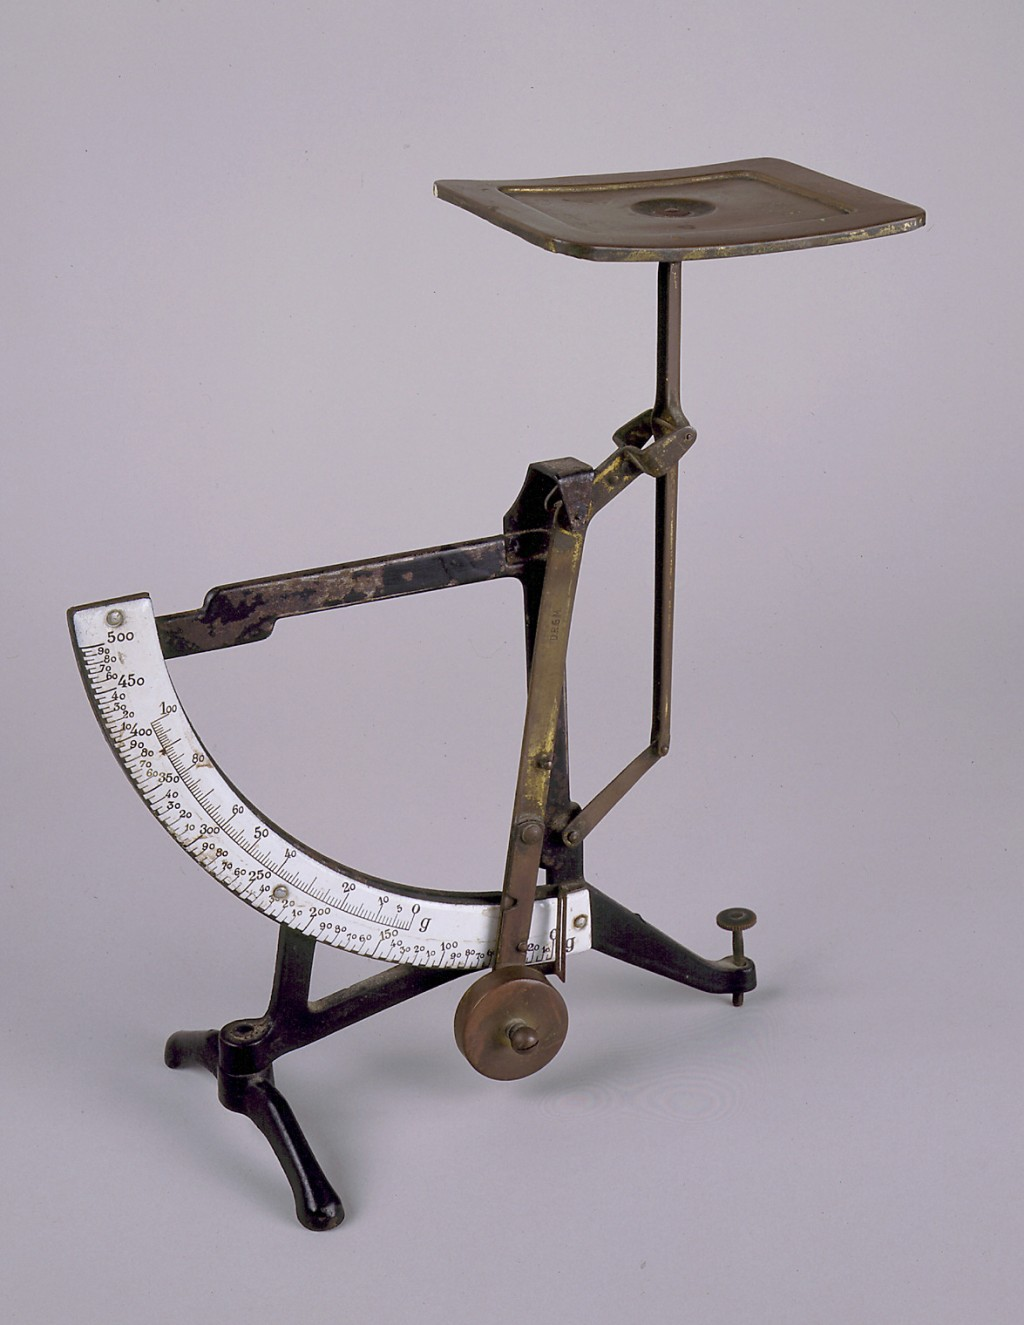 Scales used by refugees [LCID: 20027rkl]